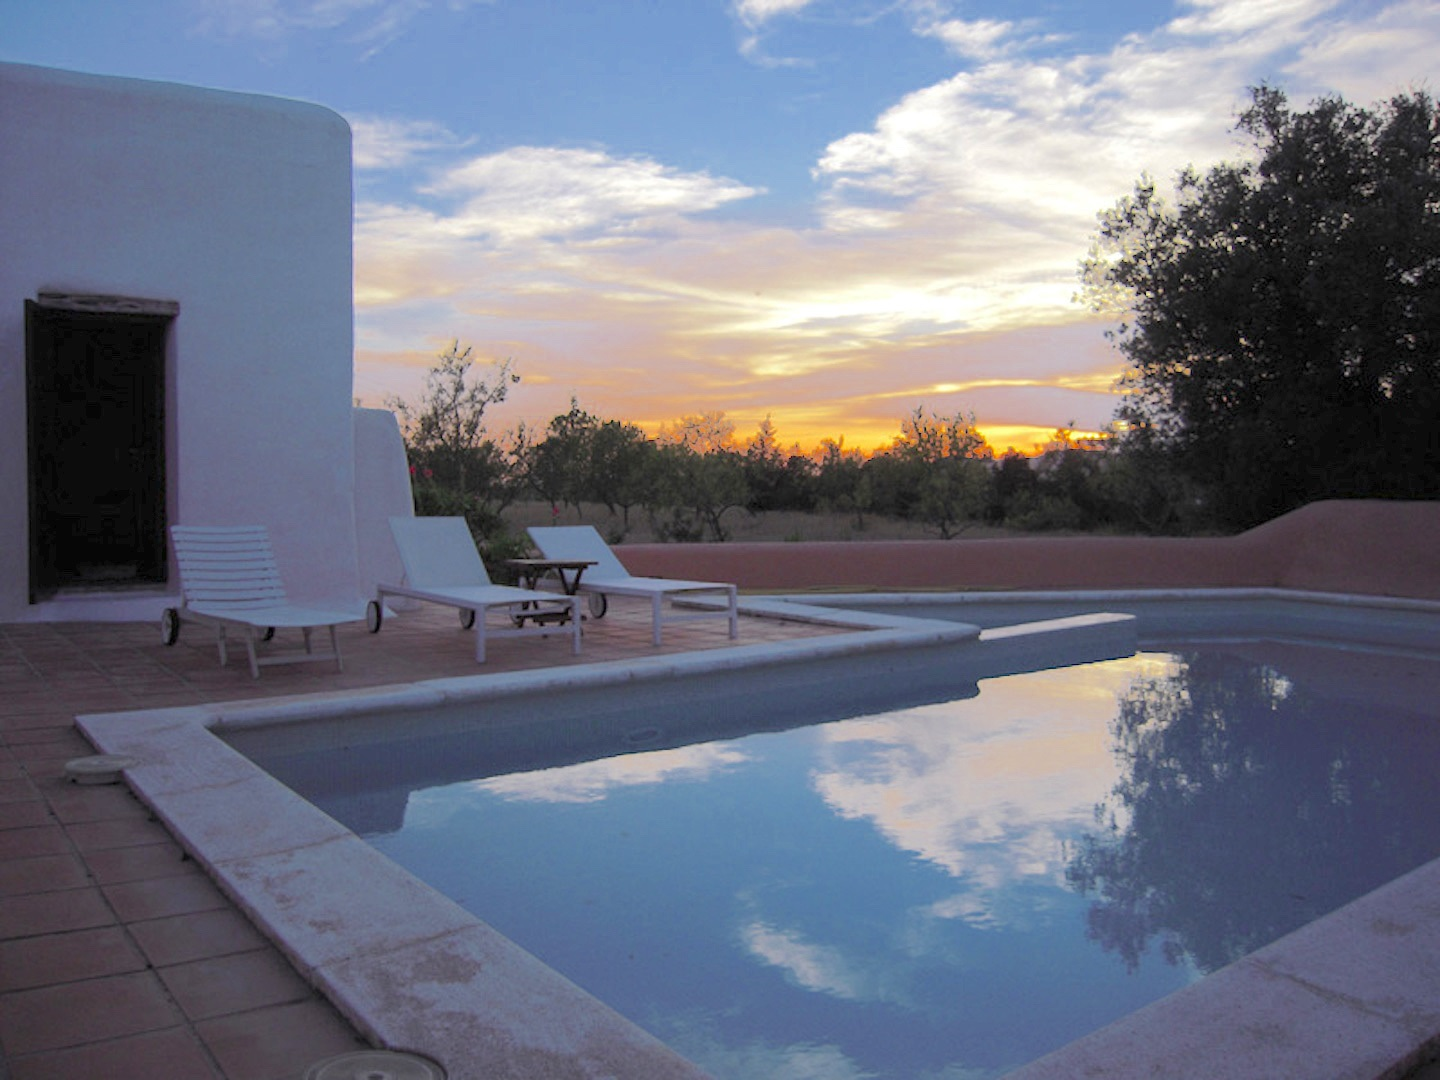 Charming new renovated finca in the center of the island